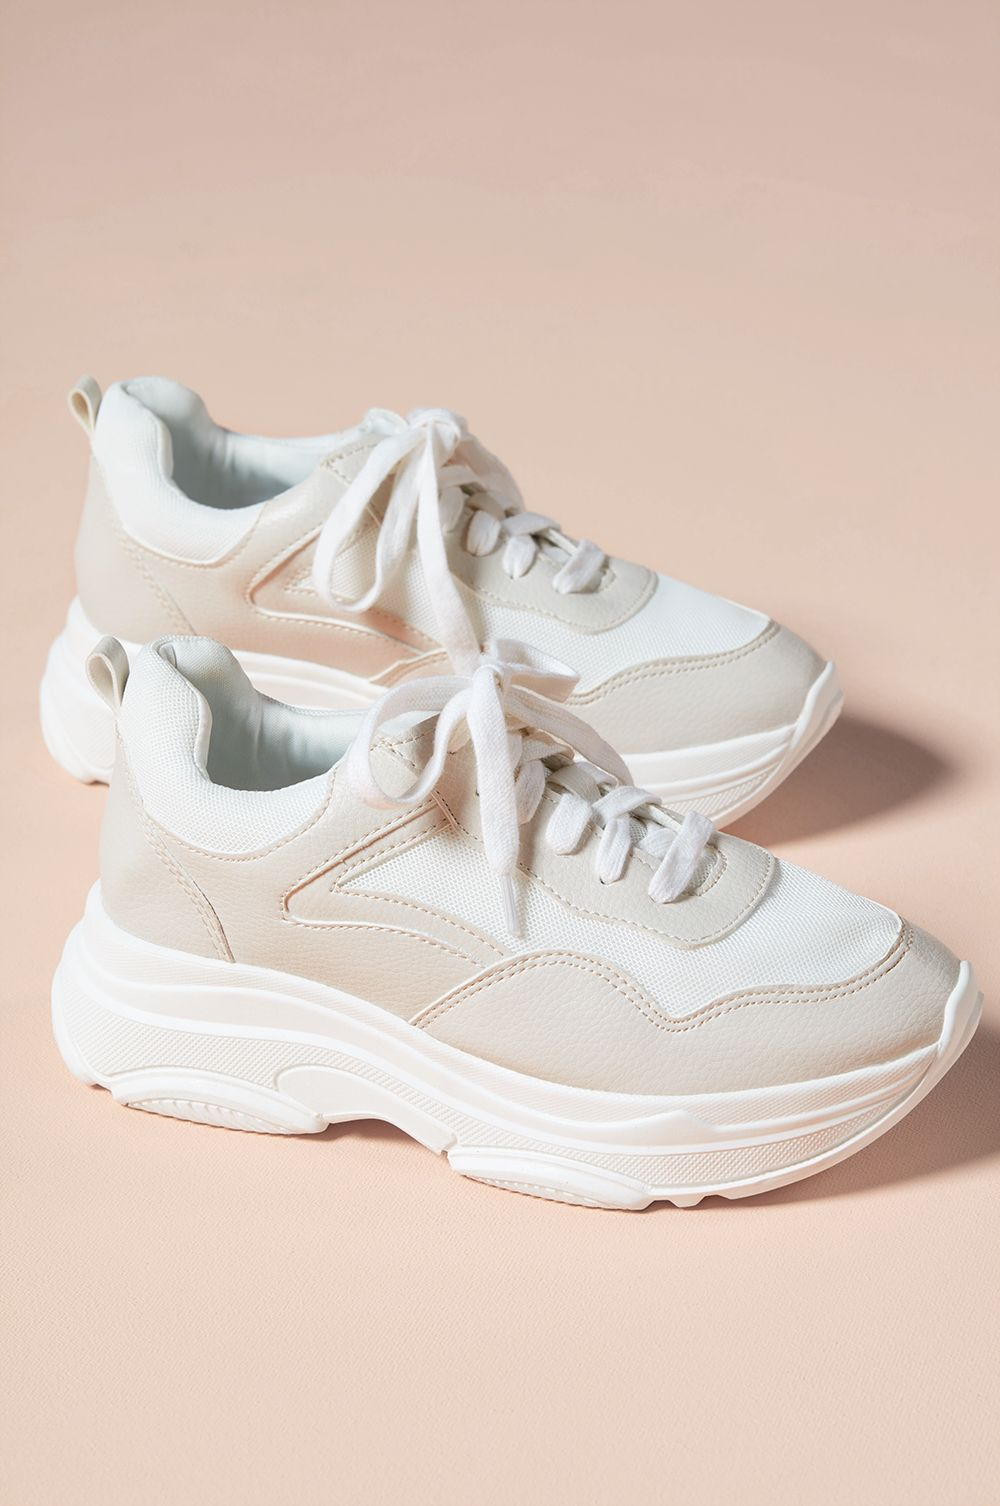 4559a5f187c Primark womenswear chunky trainers